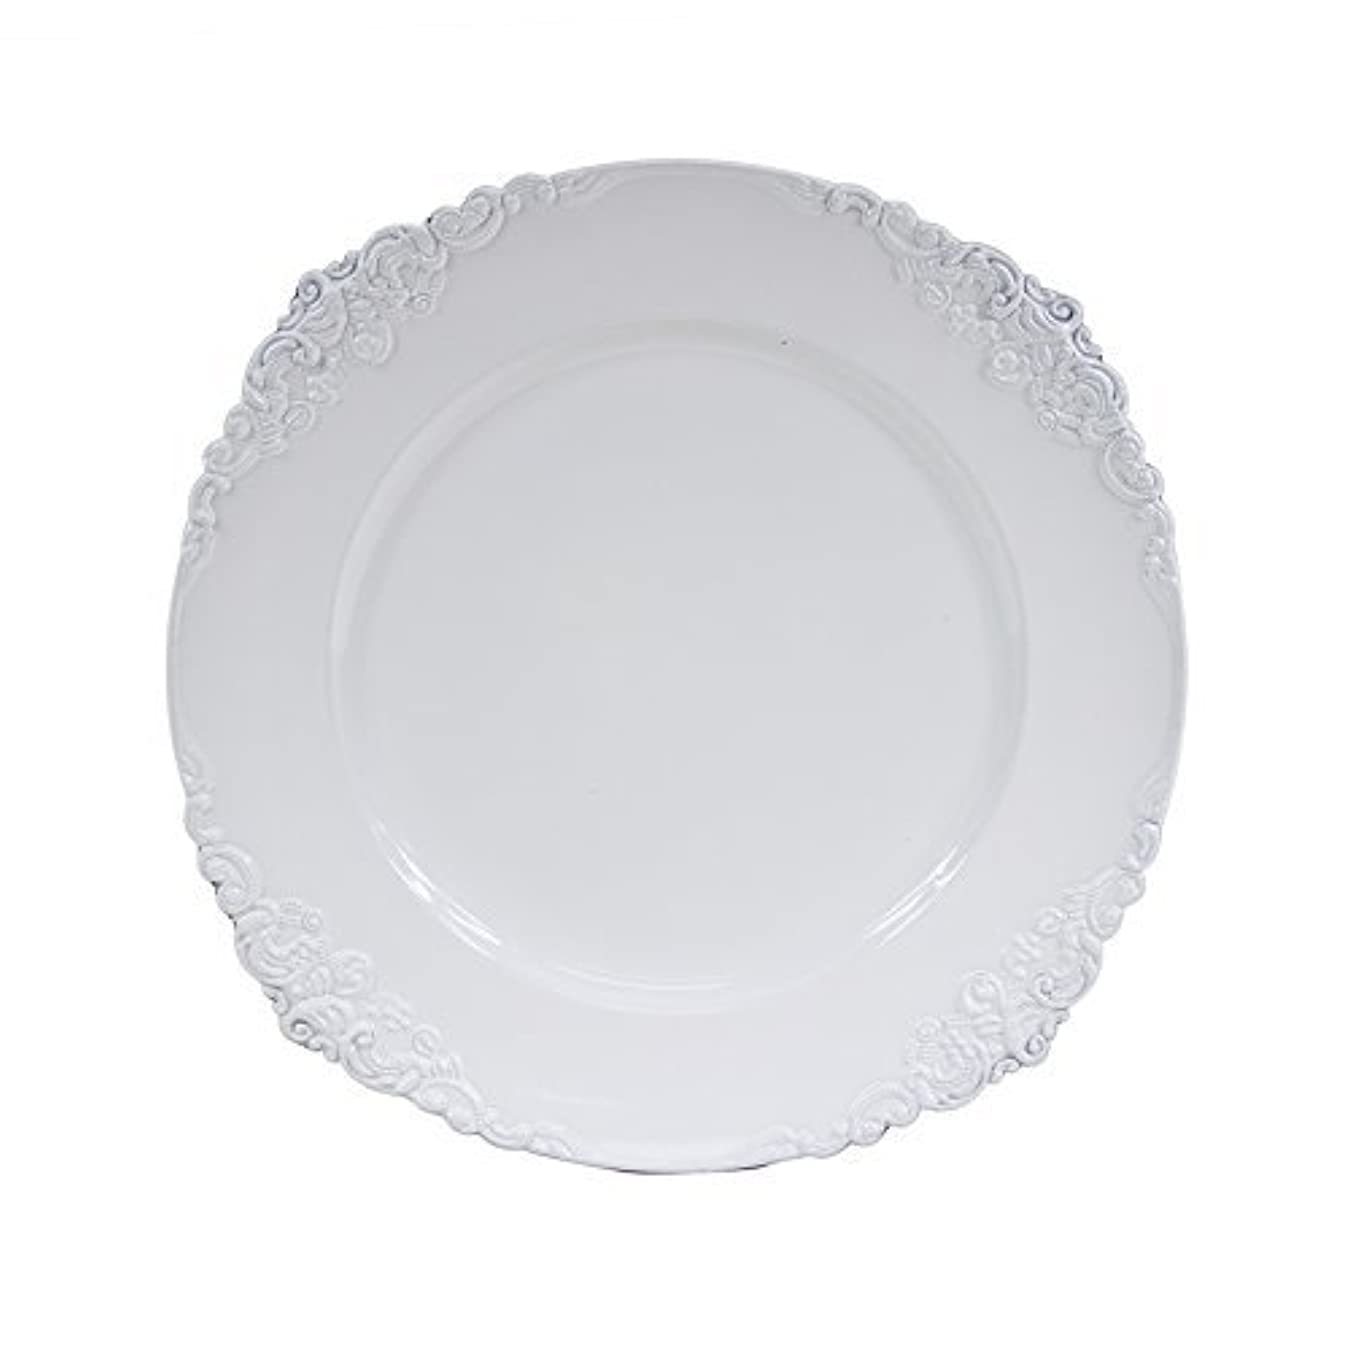 Koyal Wholesale Vintage Charger Plate, White (Pack of 4)